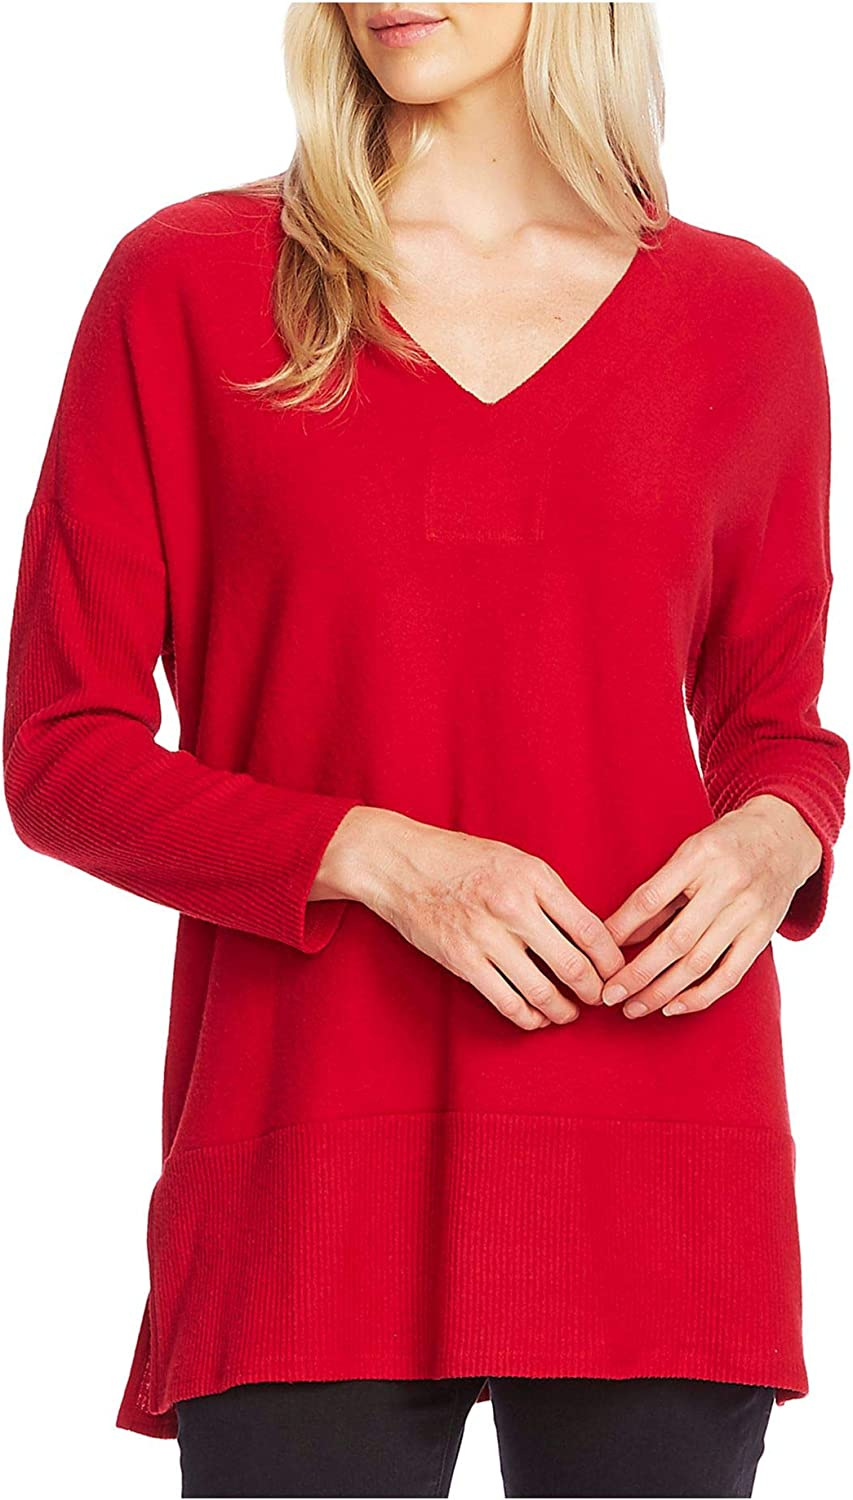 VINCE CAMUTO Womens Red Long Sleeve V Neck Tunic Top Size XXS